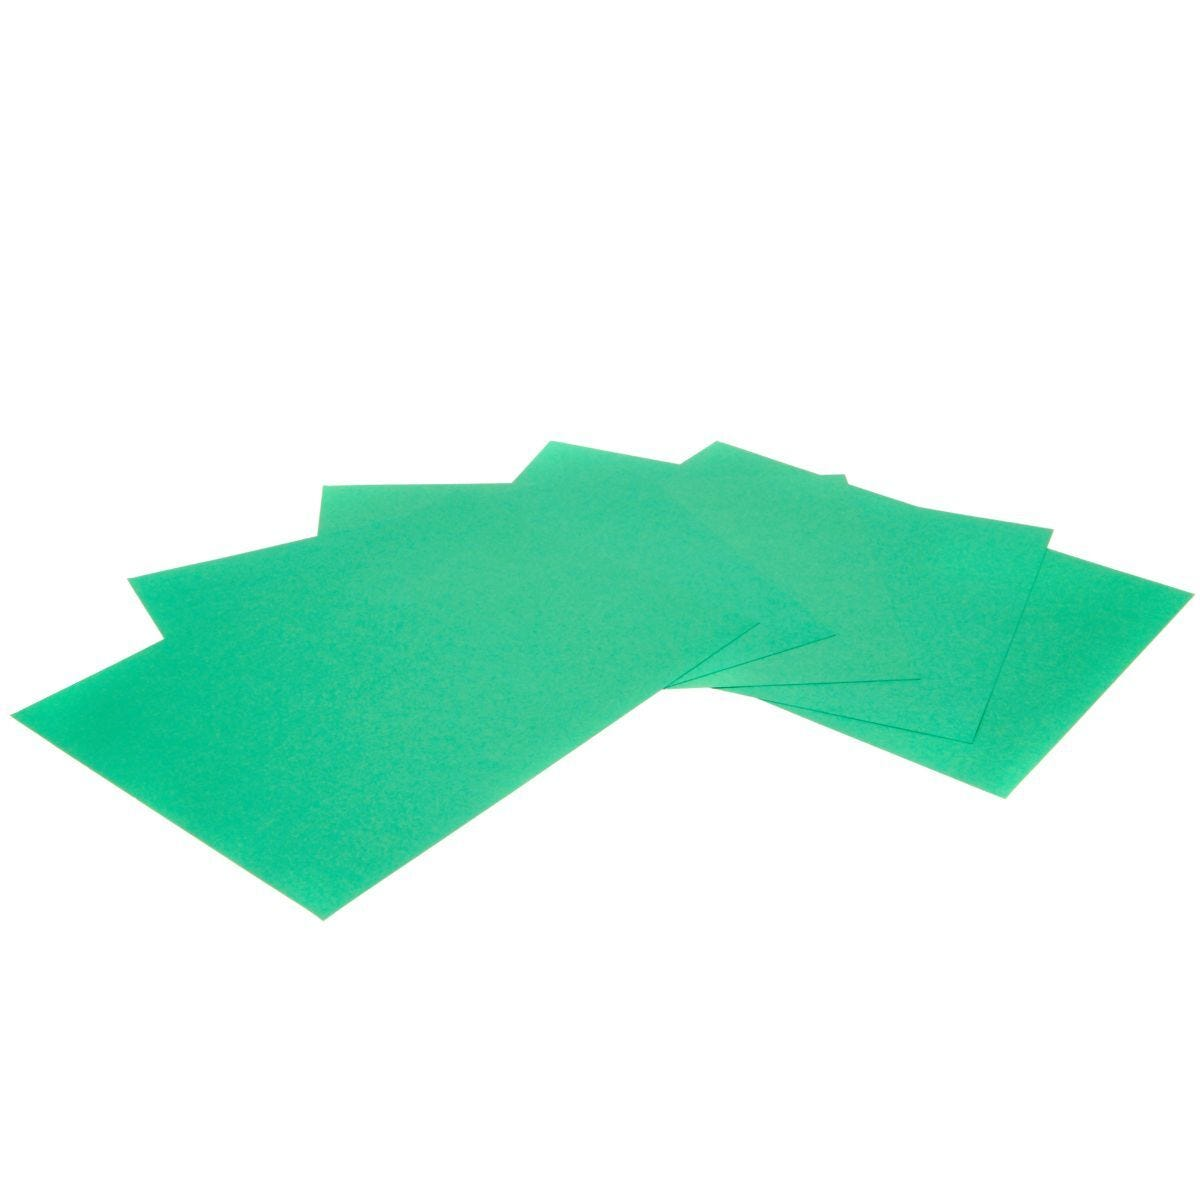 Pollen Paper A4 120gsm Pack of 5 Forest Green